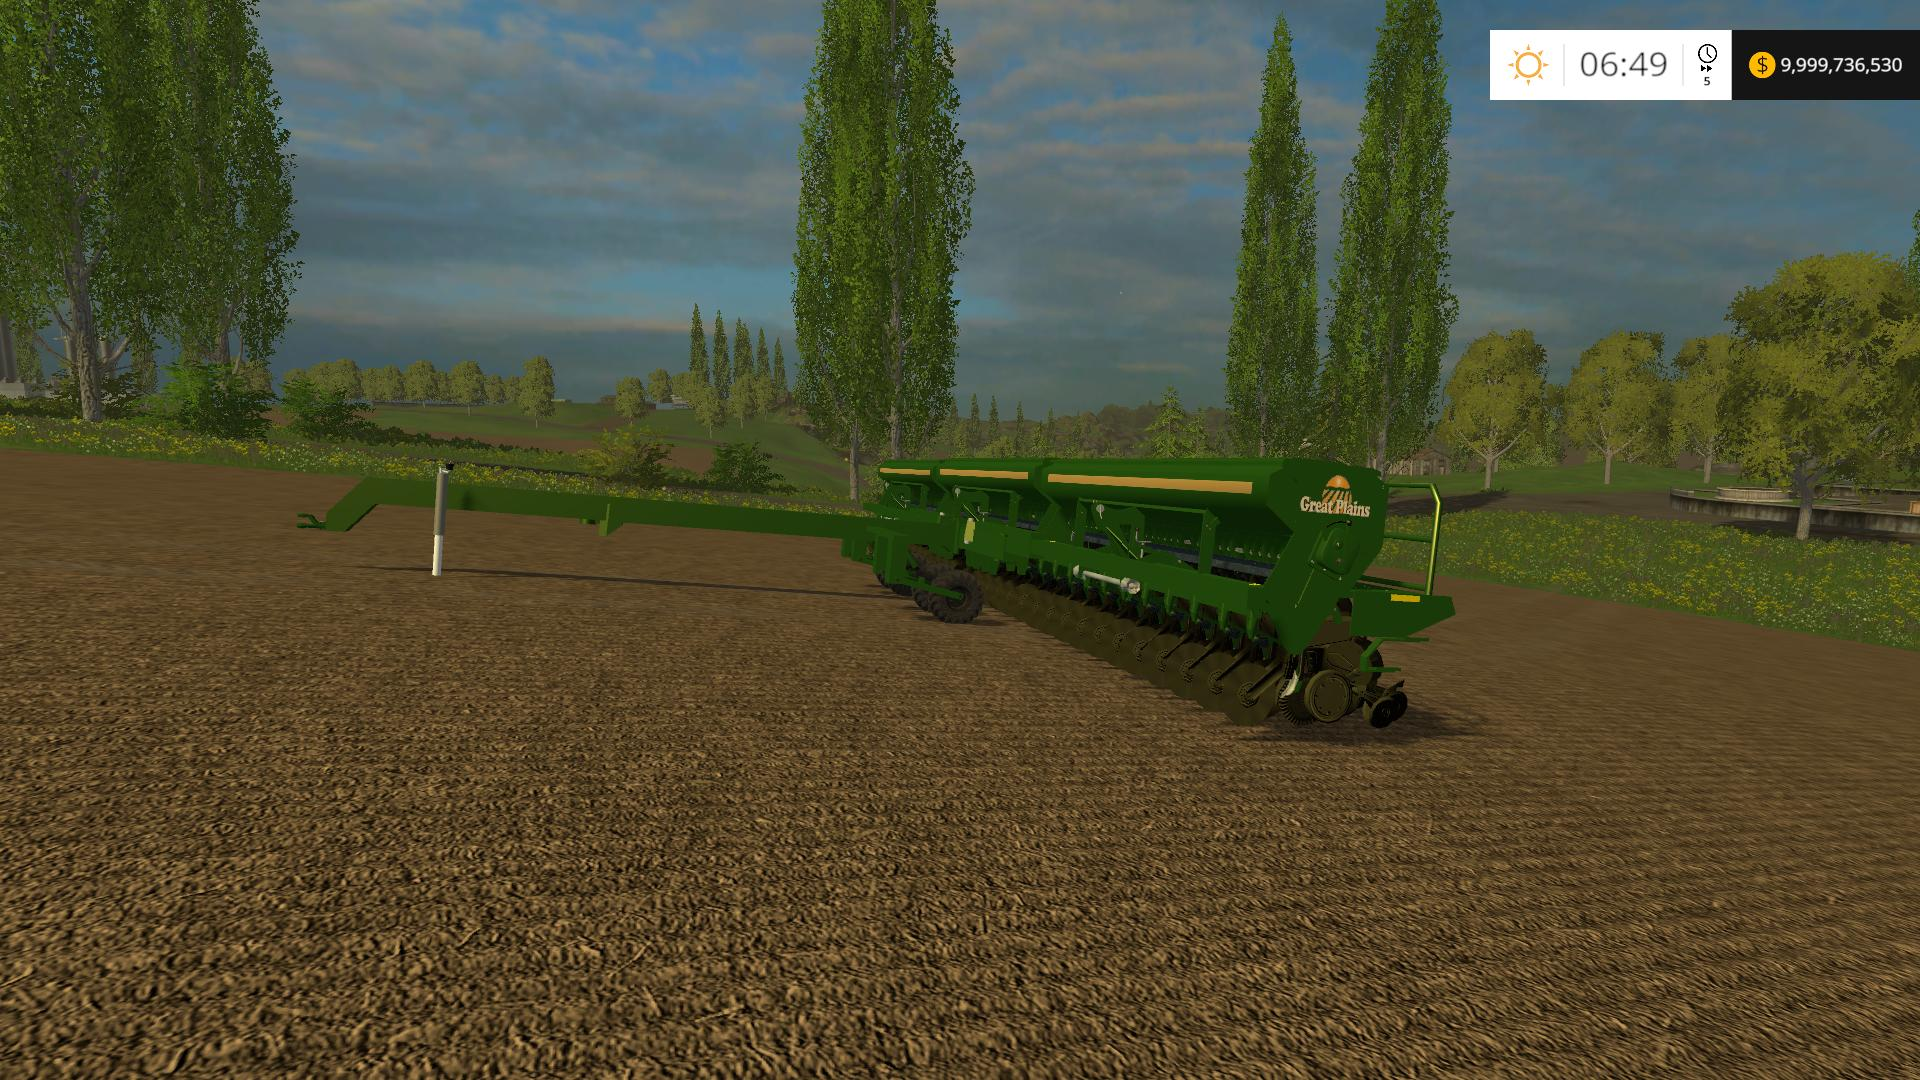 FS 15 Implements & Tools - Farming simulator 19, 17, 15 mods | FS19